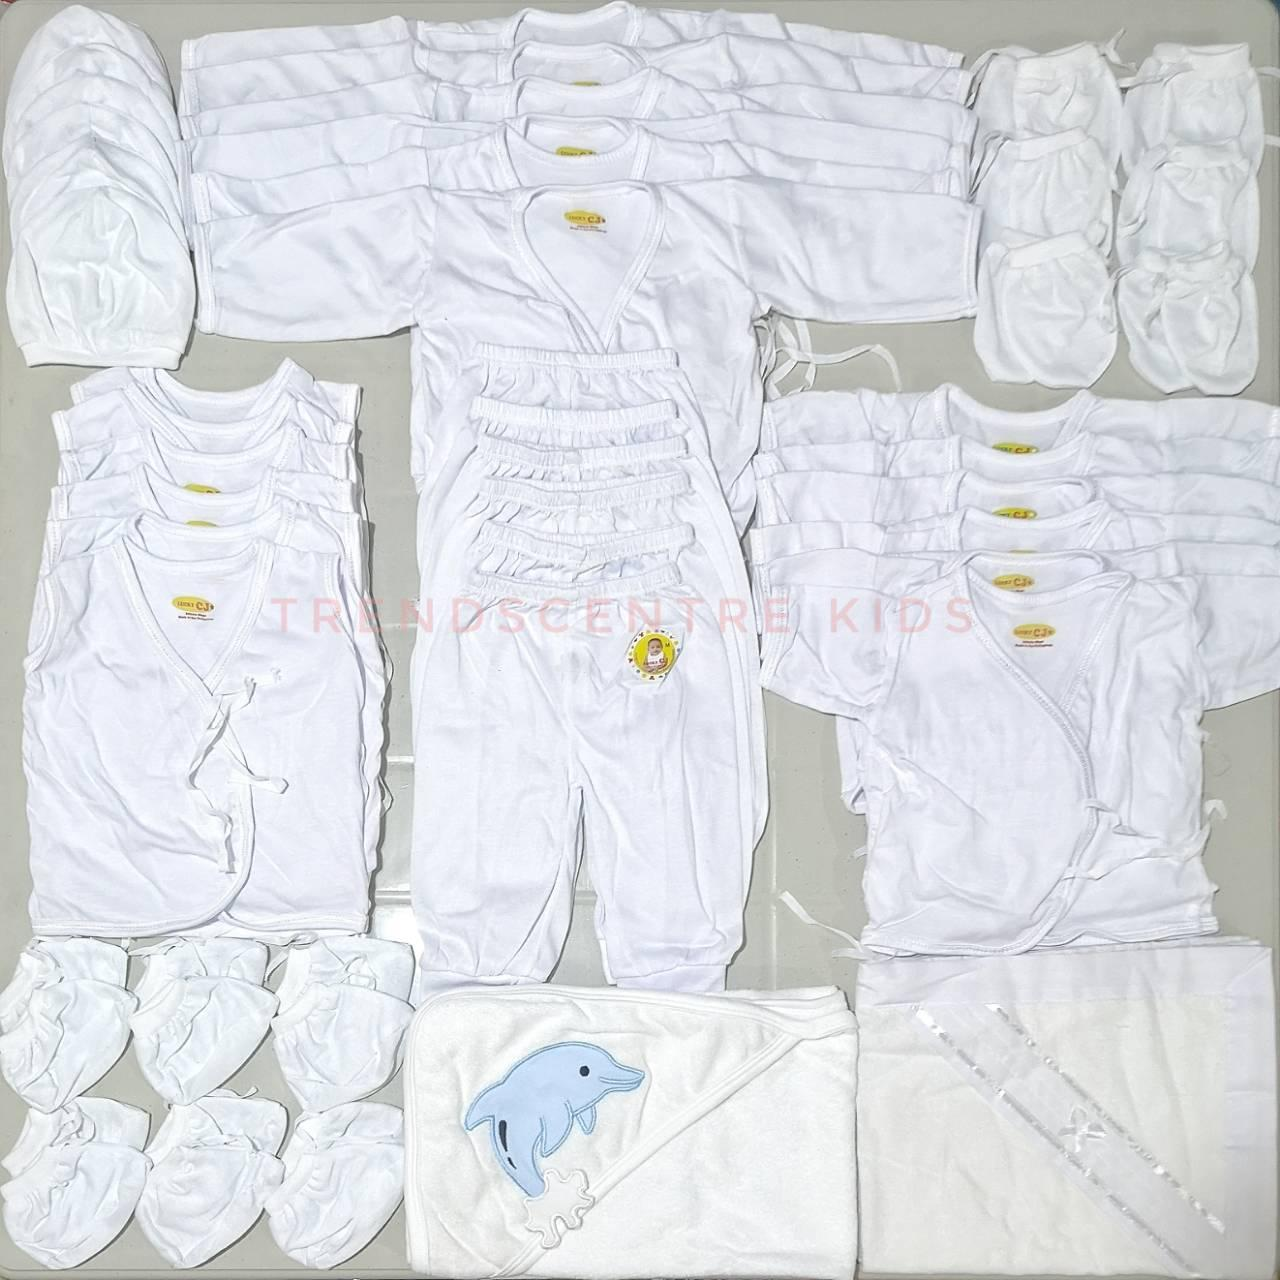 19eb7d94a Newborn Clothes for sale - Newborn Baby Clothes online brands ...